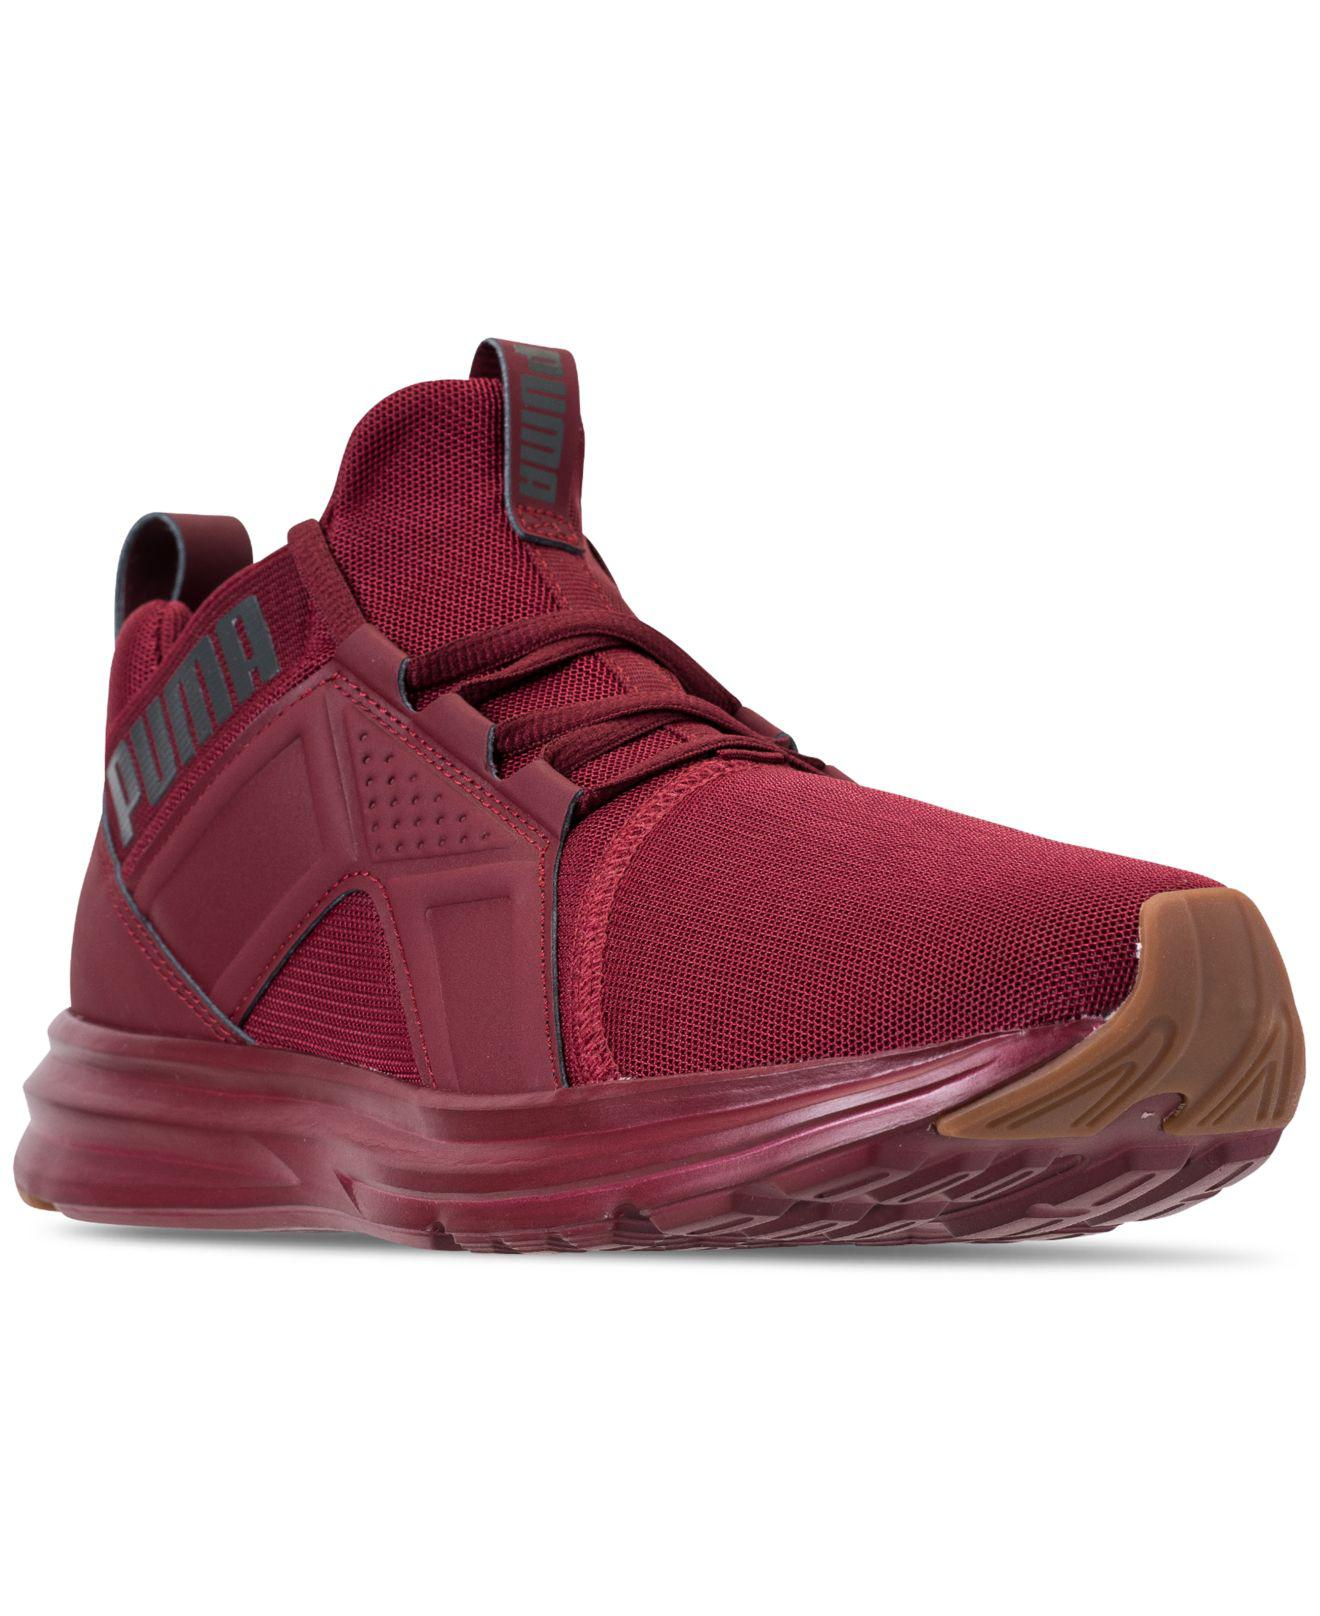 475f37487f63 Lyst - Puma Enzo Premium Mesh Casual Sneakers From Finish Line in ...